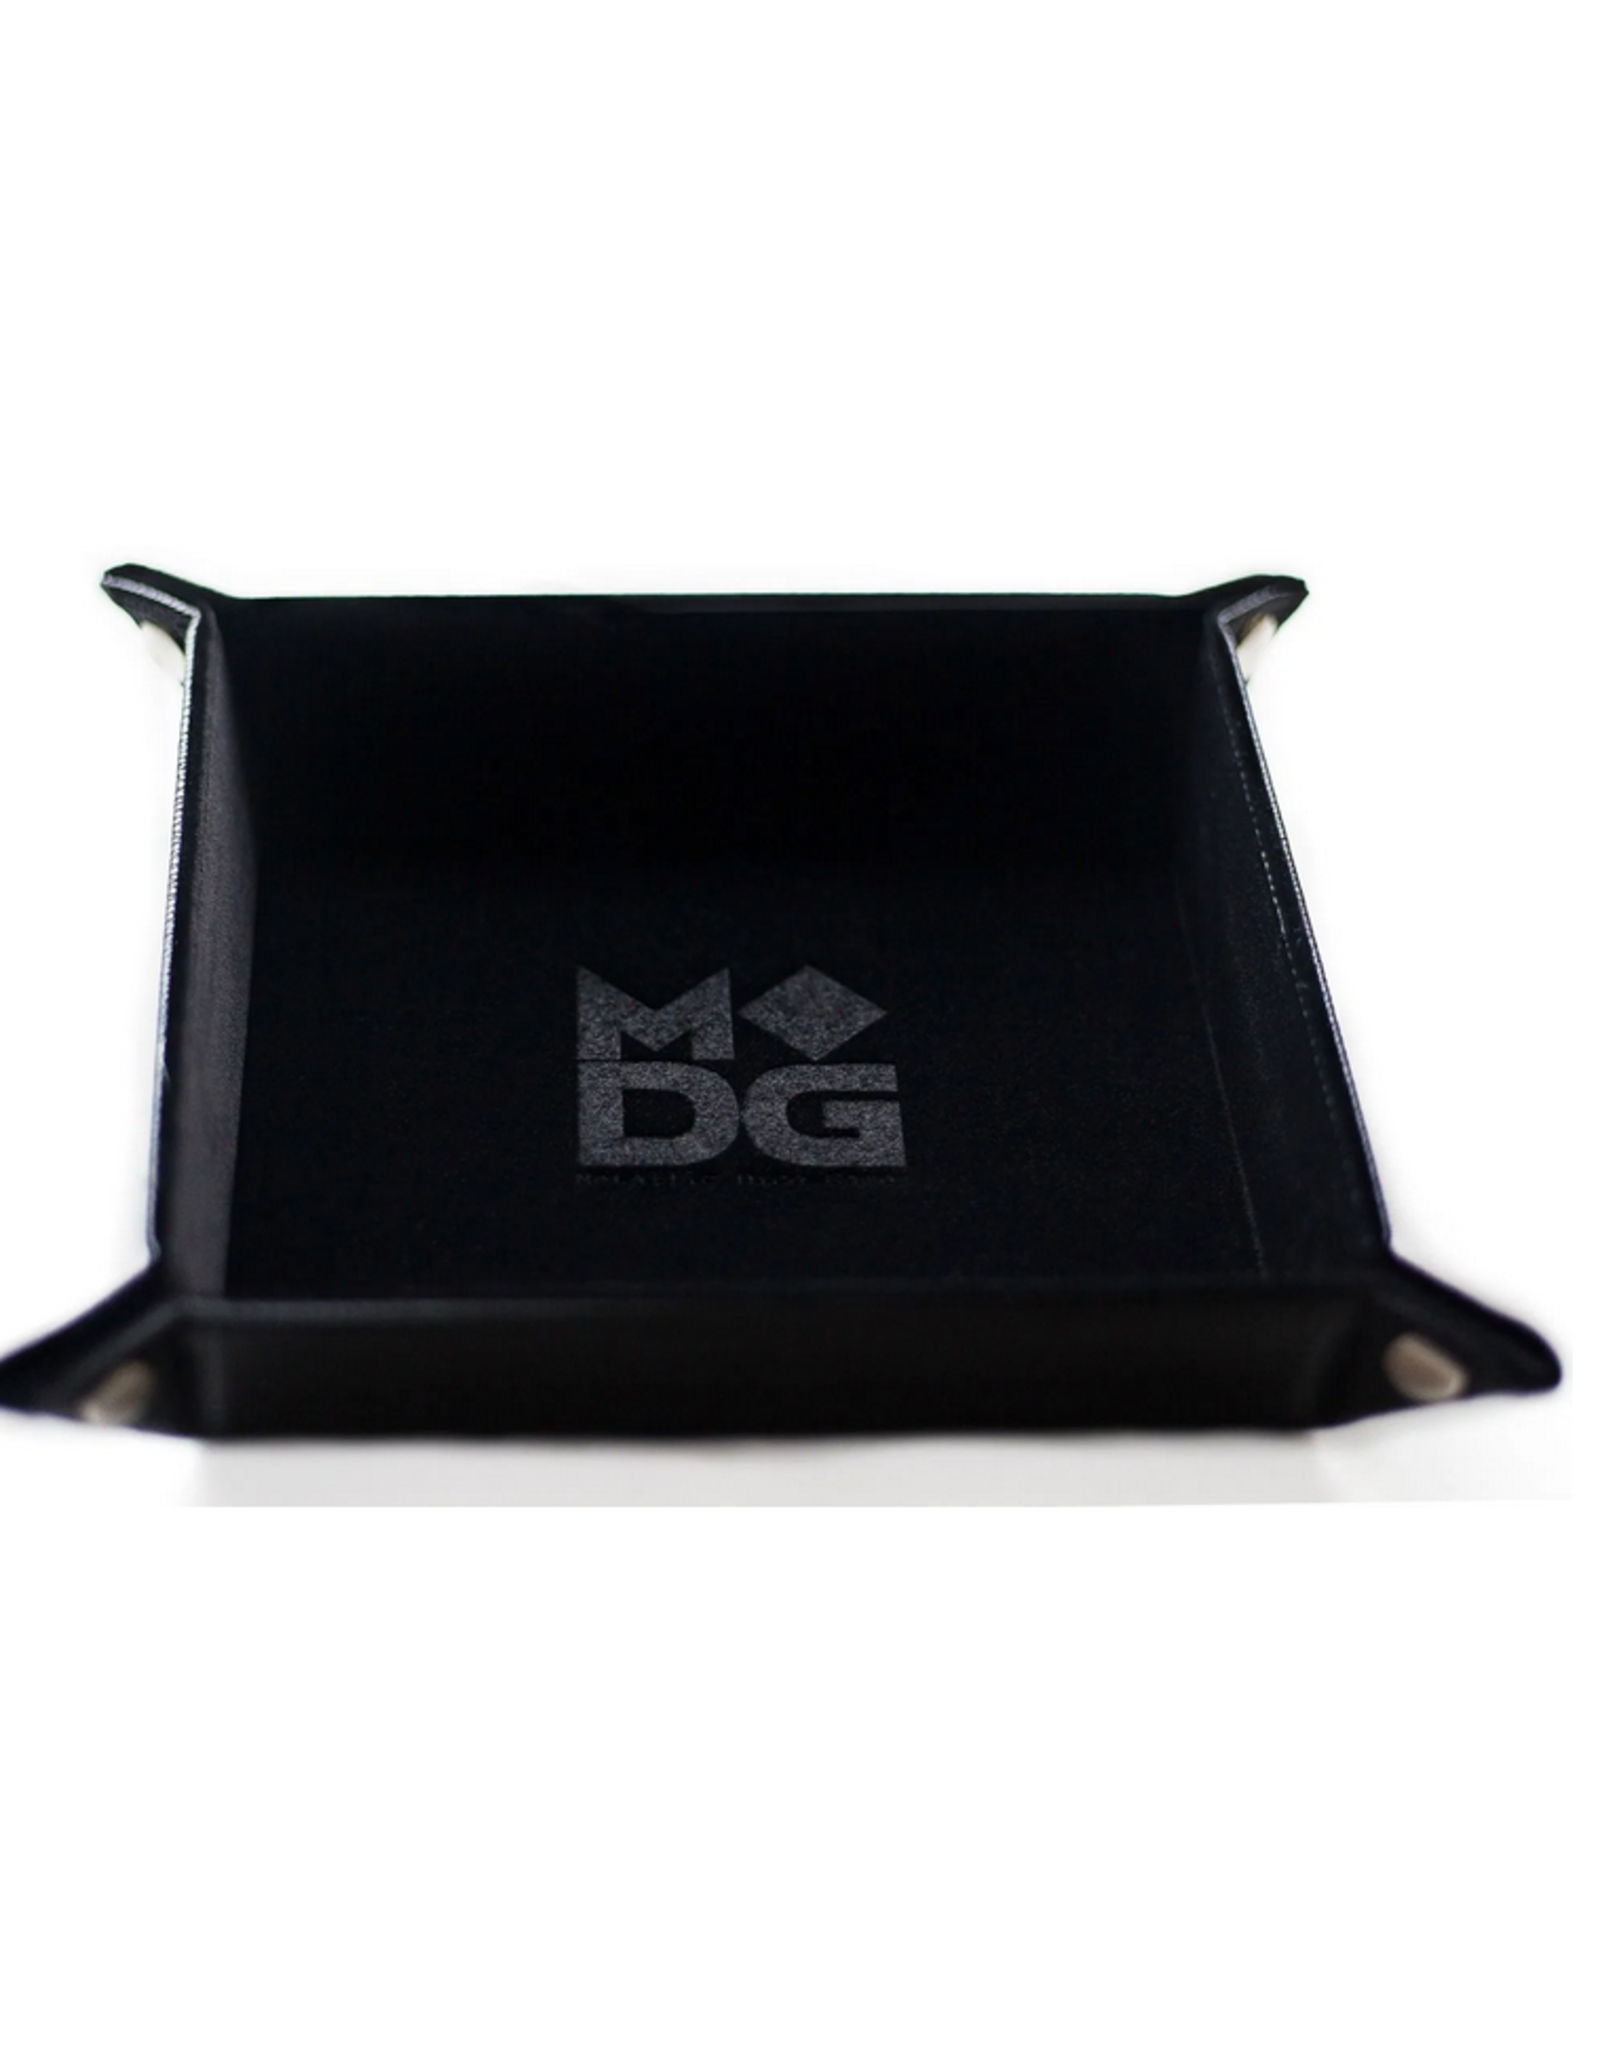 Dice Velvet Folding Dice Tray with Leather Backing 10in x 10in Black